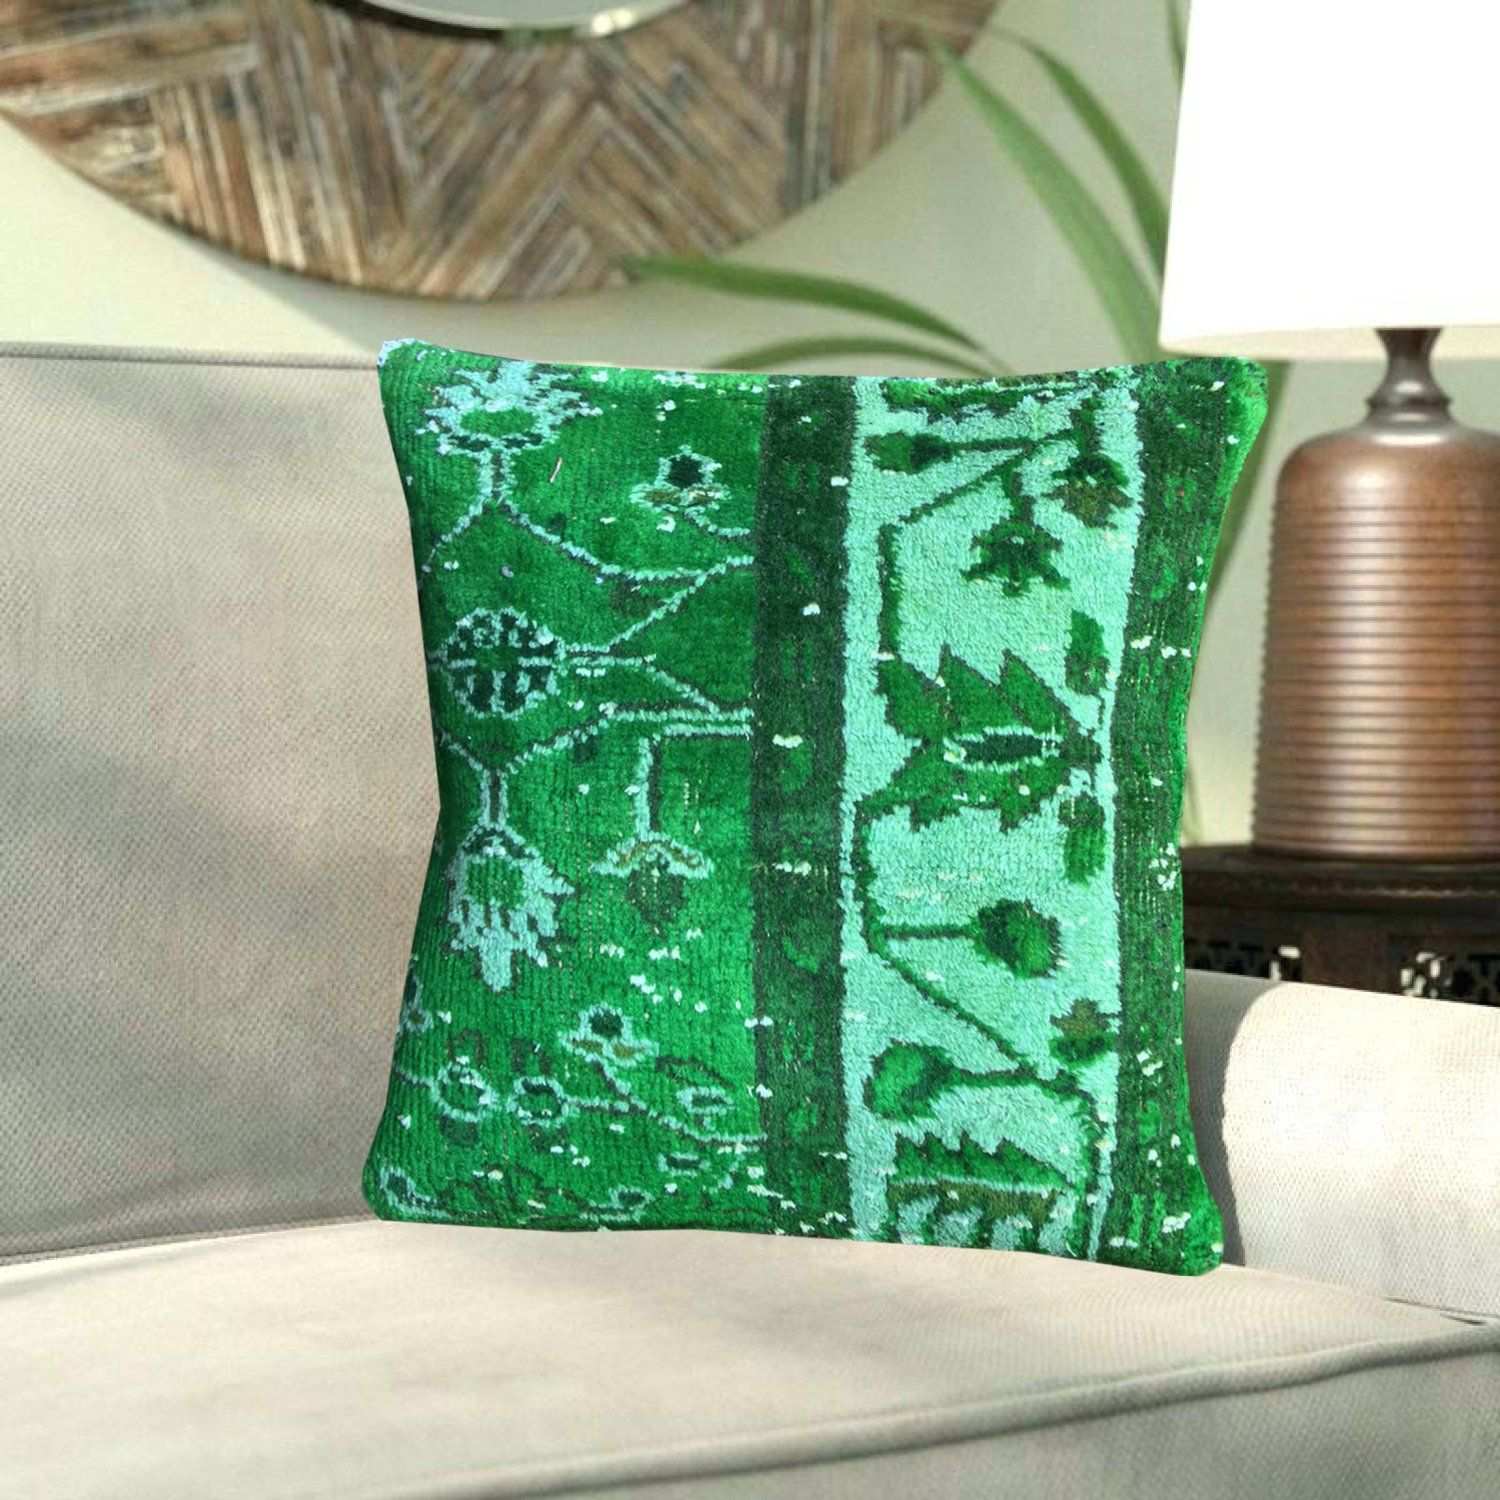 Remarkable Neon Green Floral Turkish Kilim Pillows 16X16 Decorative Pdpeps Interior Chair Design Pdpepsorg